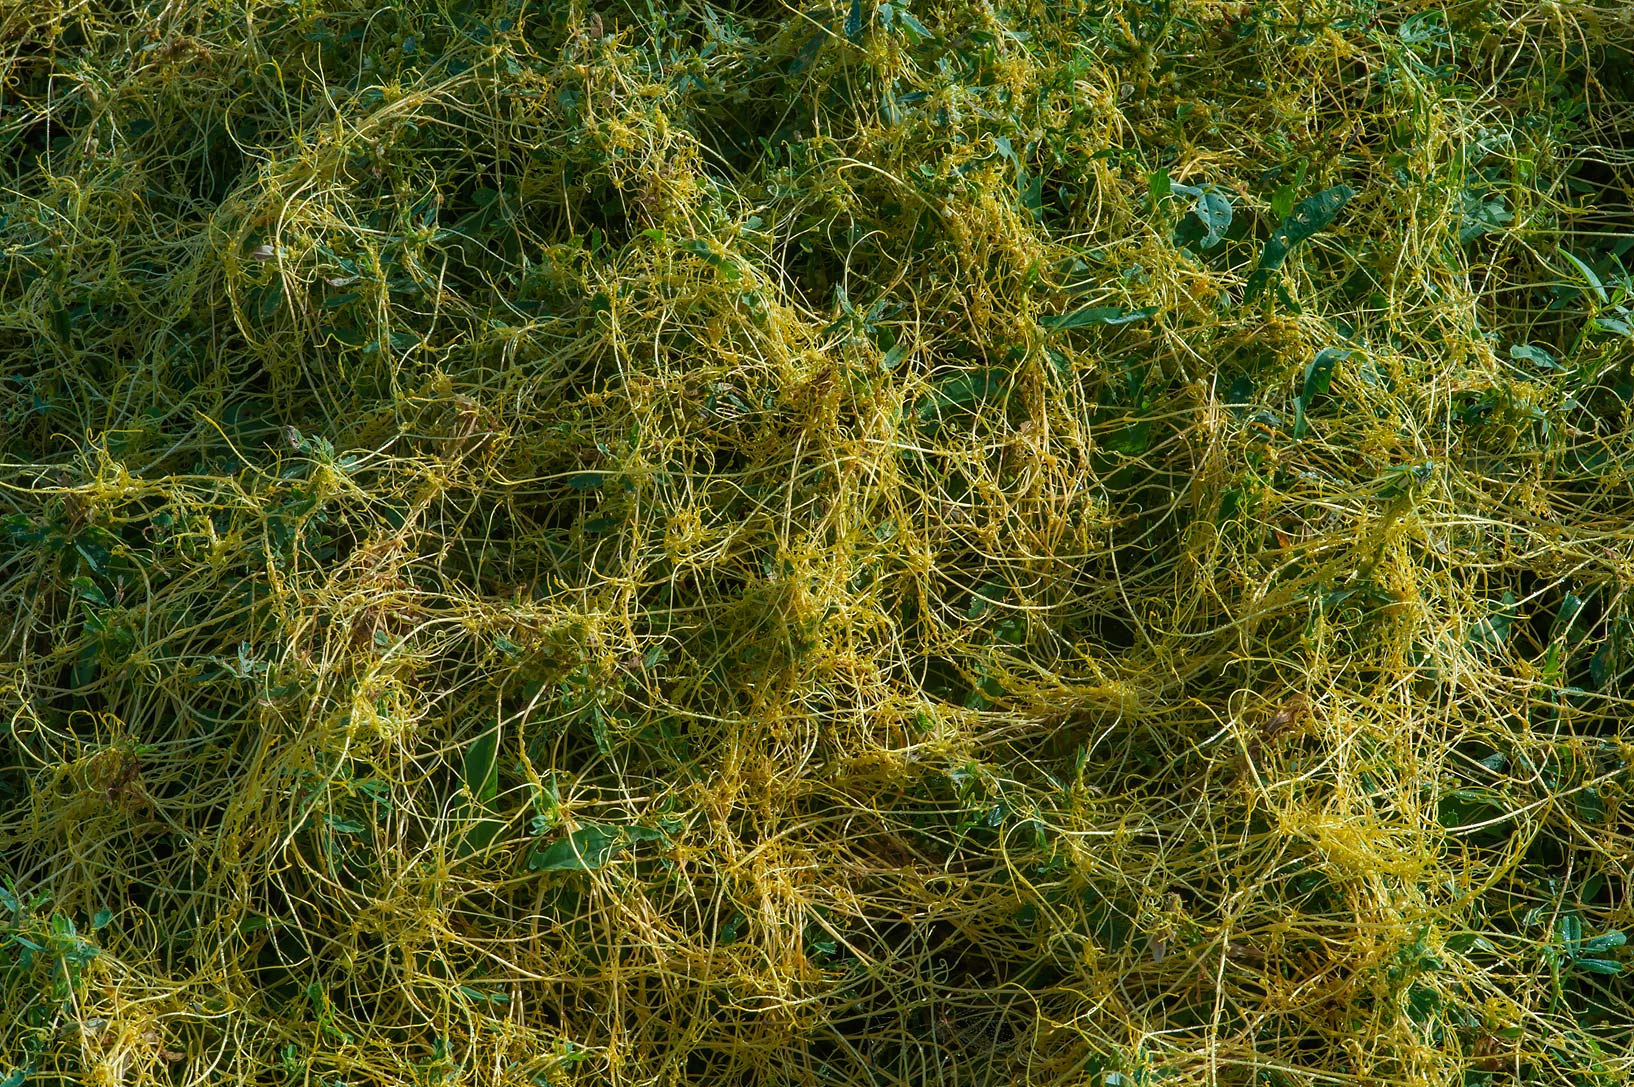 Dodder Cuscuta pedicellata on Green Circles...in Irkhaya (Irkaya) Farms. Qatar